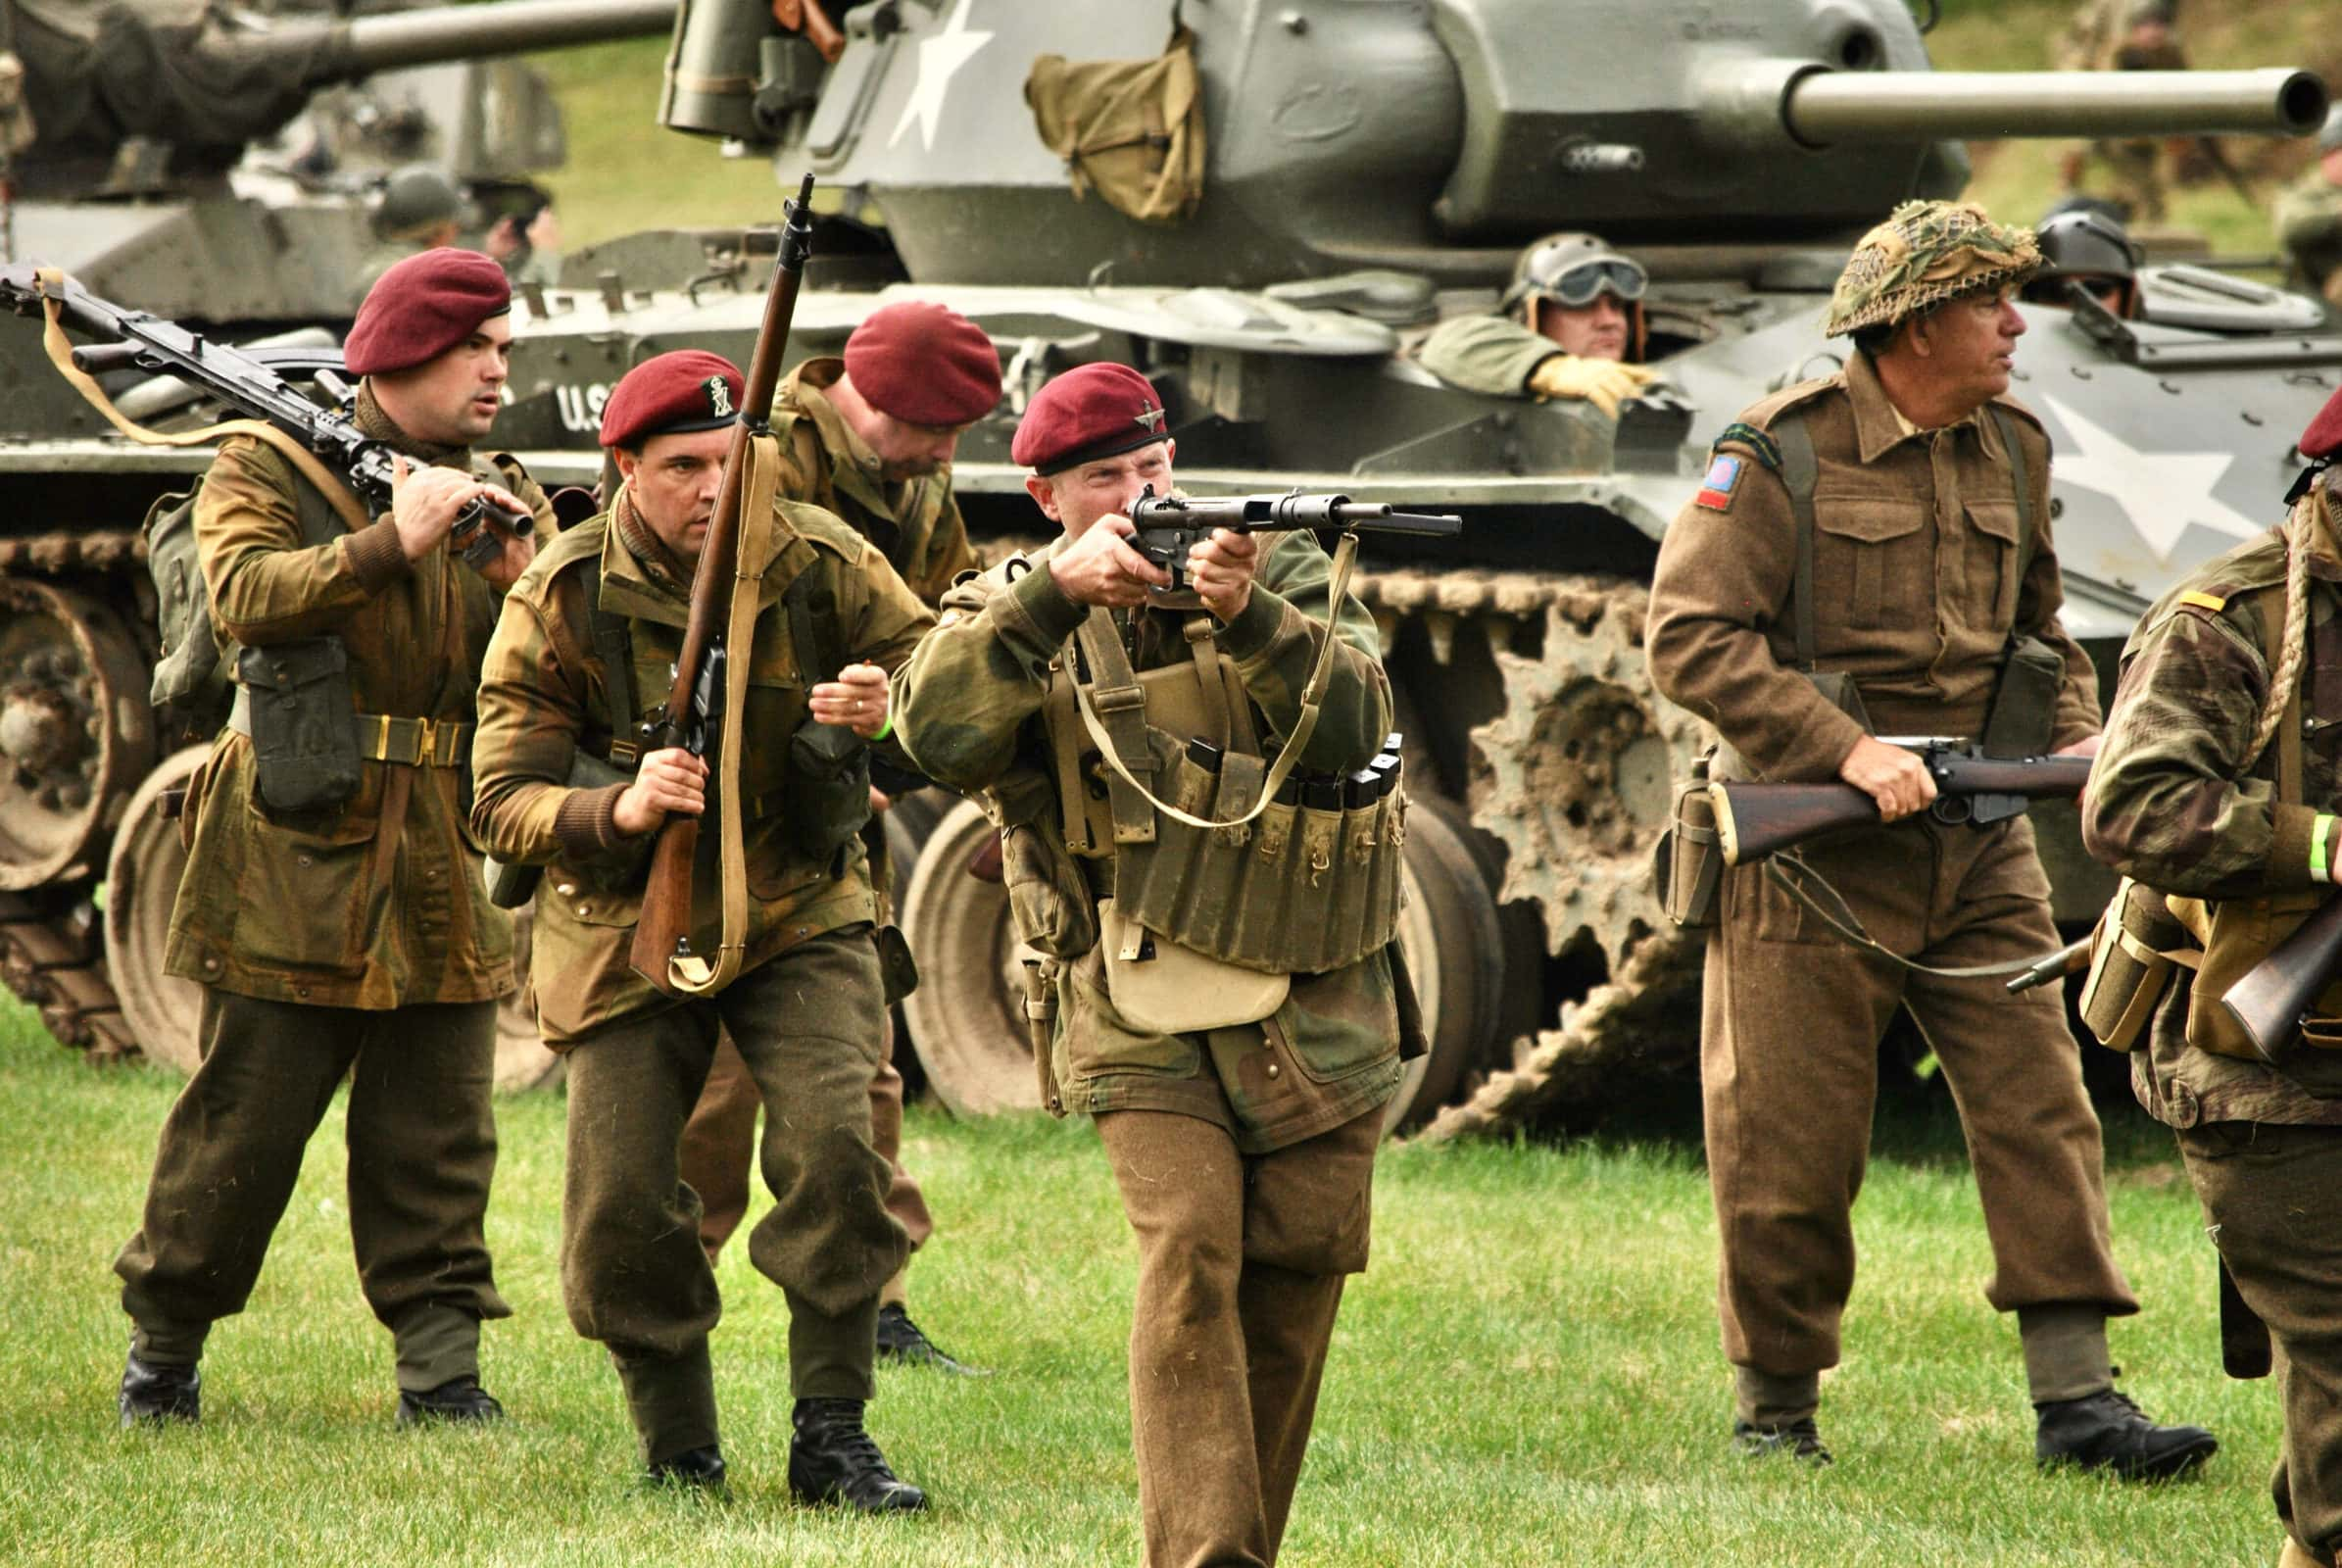 Reenactors take their positions during this year's Battle for the Airfield reenactment at the American Heritage Museum in Hudson.